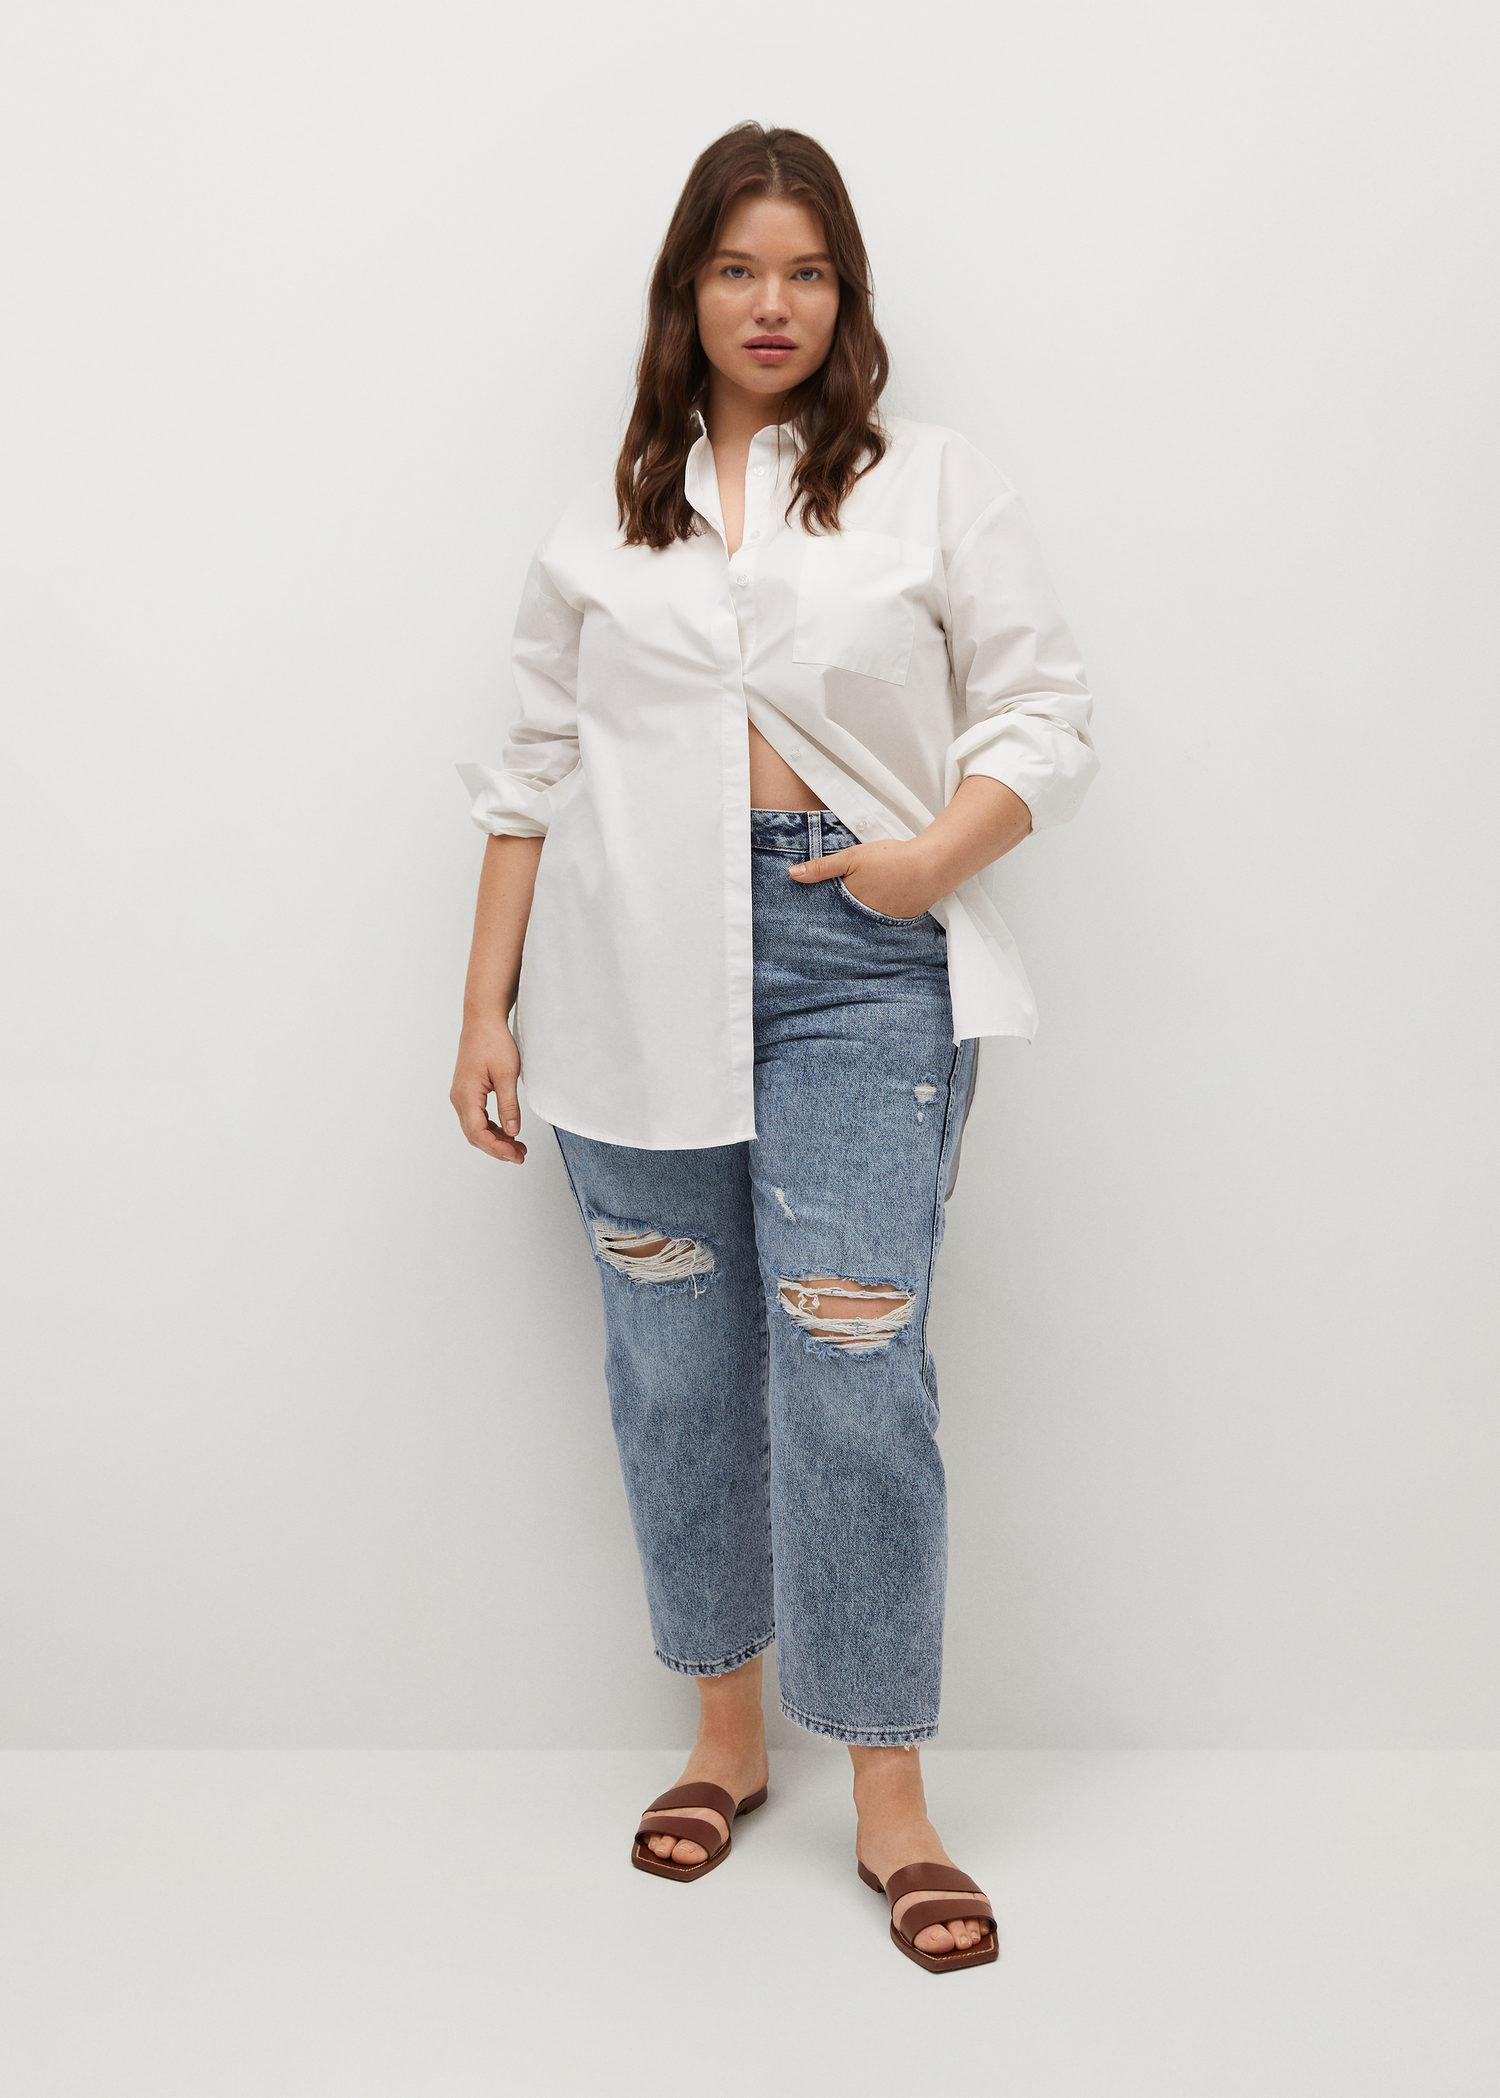 Decorative ripped jeans